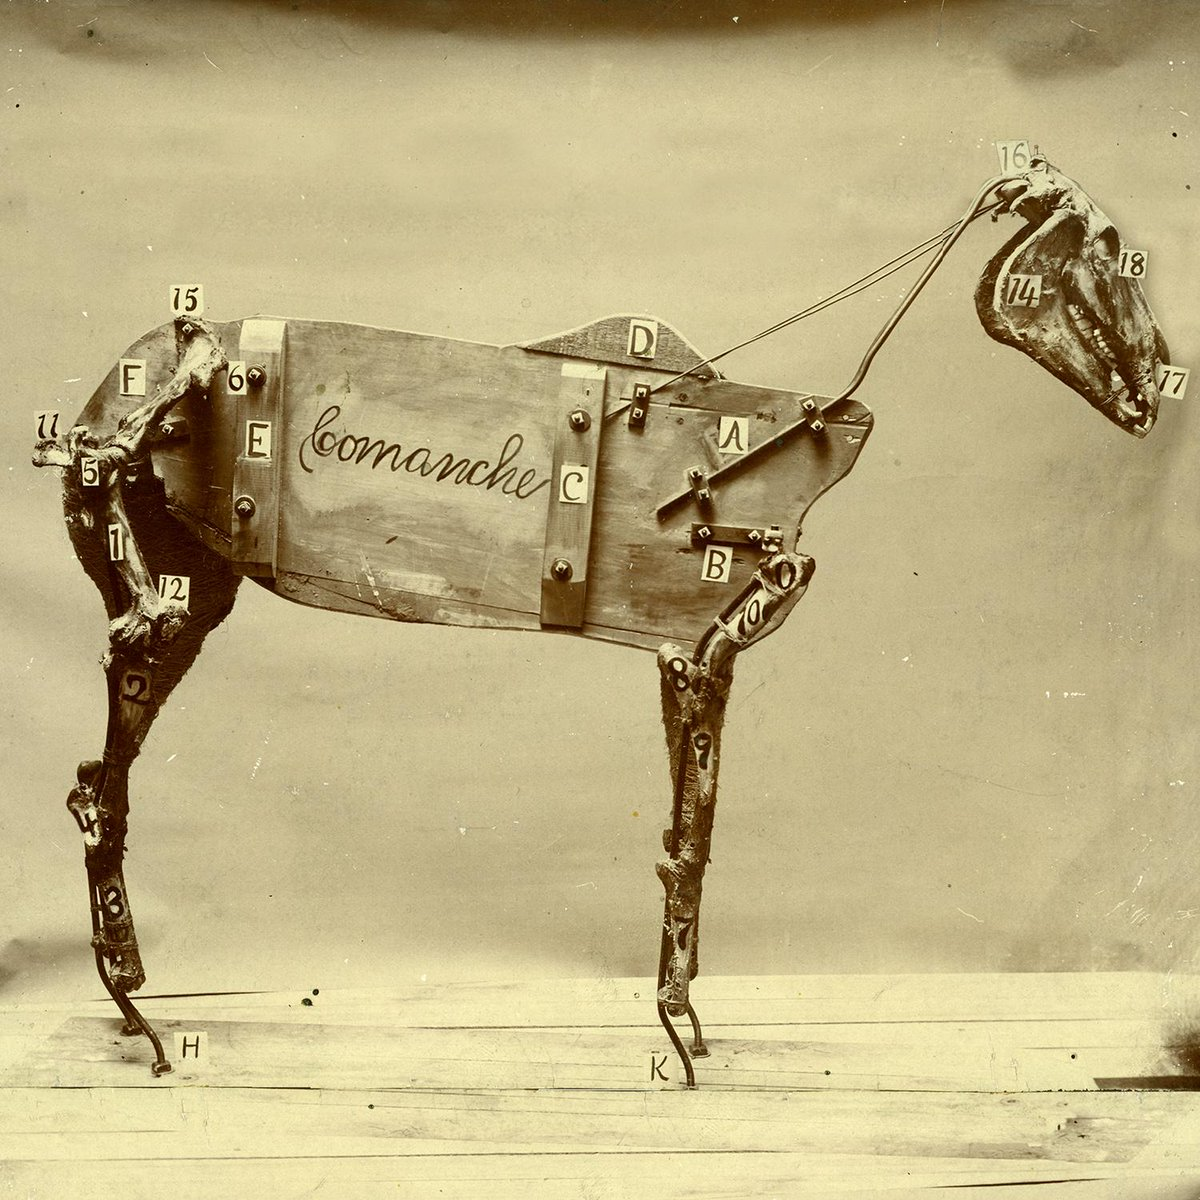 Chad's new album The Horse Comanche is out now! Give it a spin on @iTunesMusic: http://t.co/hDUZFsIoOf http://t.co/tiXQdKNnKI